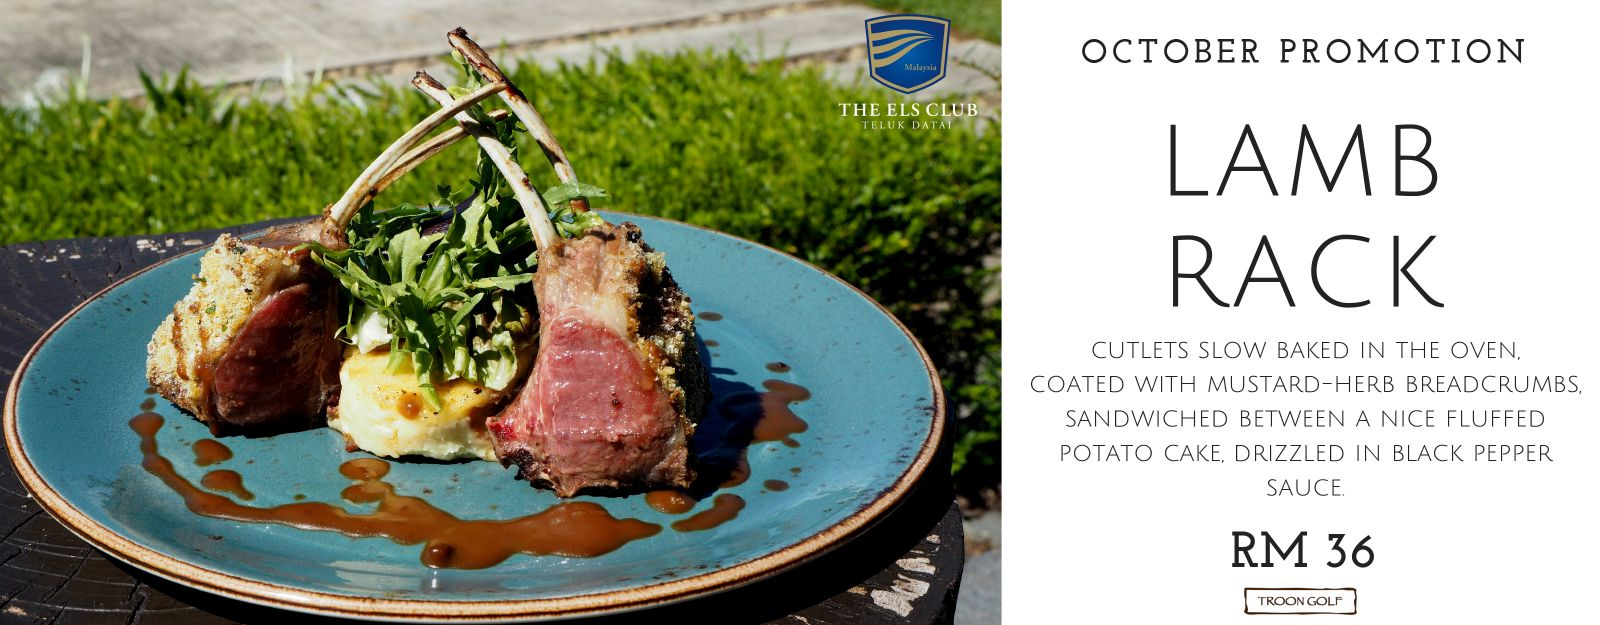 A flyer for an October Promotion for Lamb Rack at The Els Club Malaysia - Teluk Datai